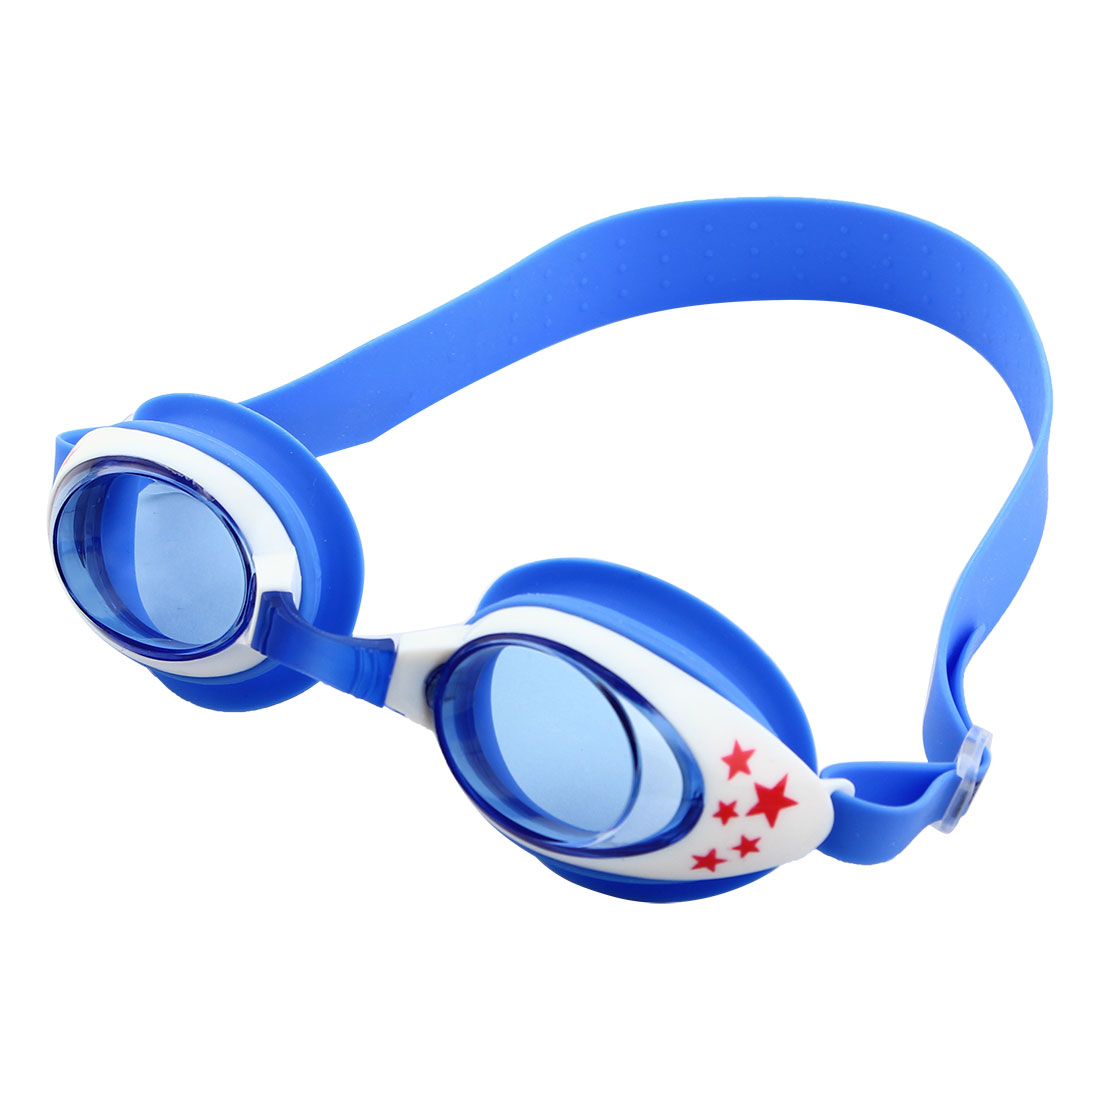 Clear Vision Anti Fog Adjustable Belt Swim Glasses Swimming Goggles Blue White w Storage Case for Youth Boys Girls